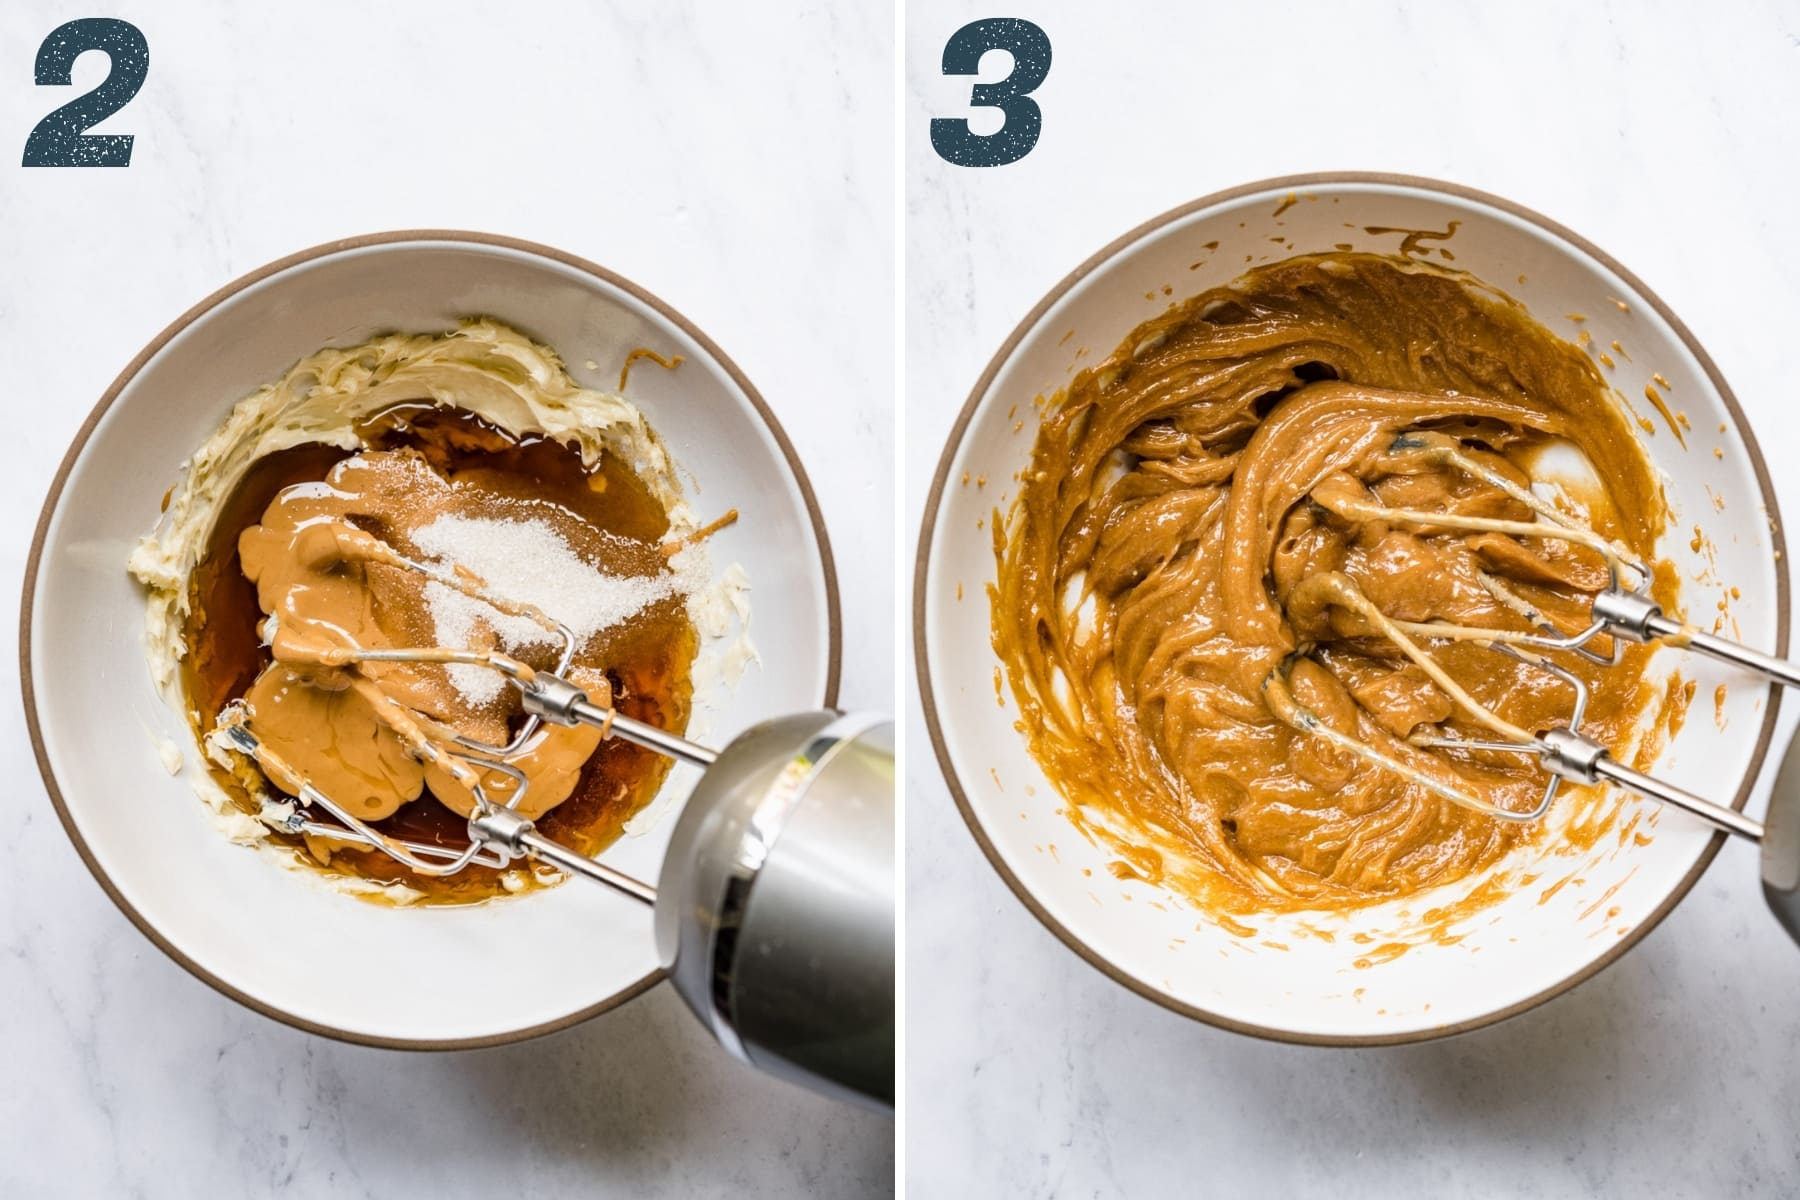 before and after mixing together butter, maple syrup, sugar and peanut butter in mixing bowl.